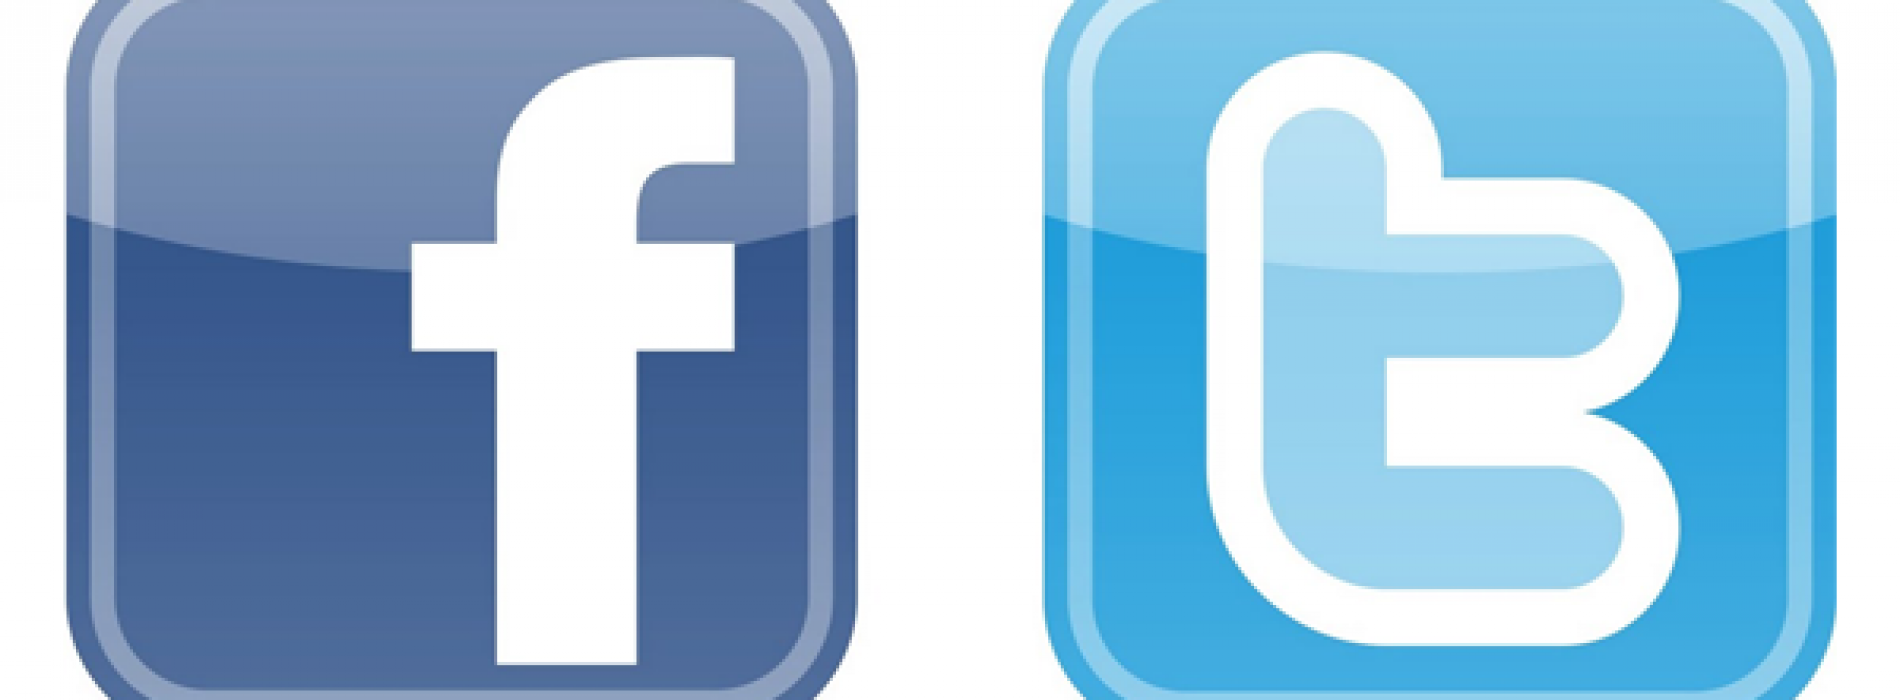 POLL: Do you use third party Facebook, Twitter apps?